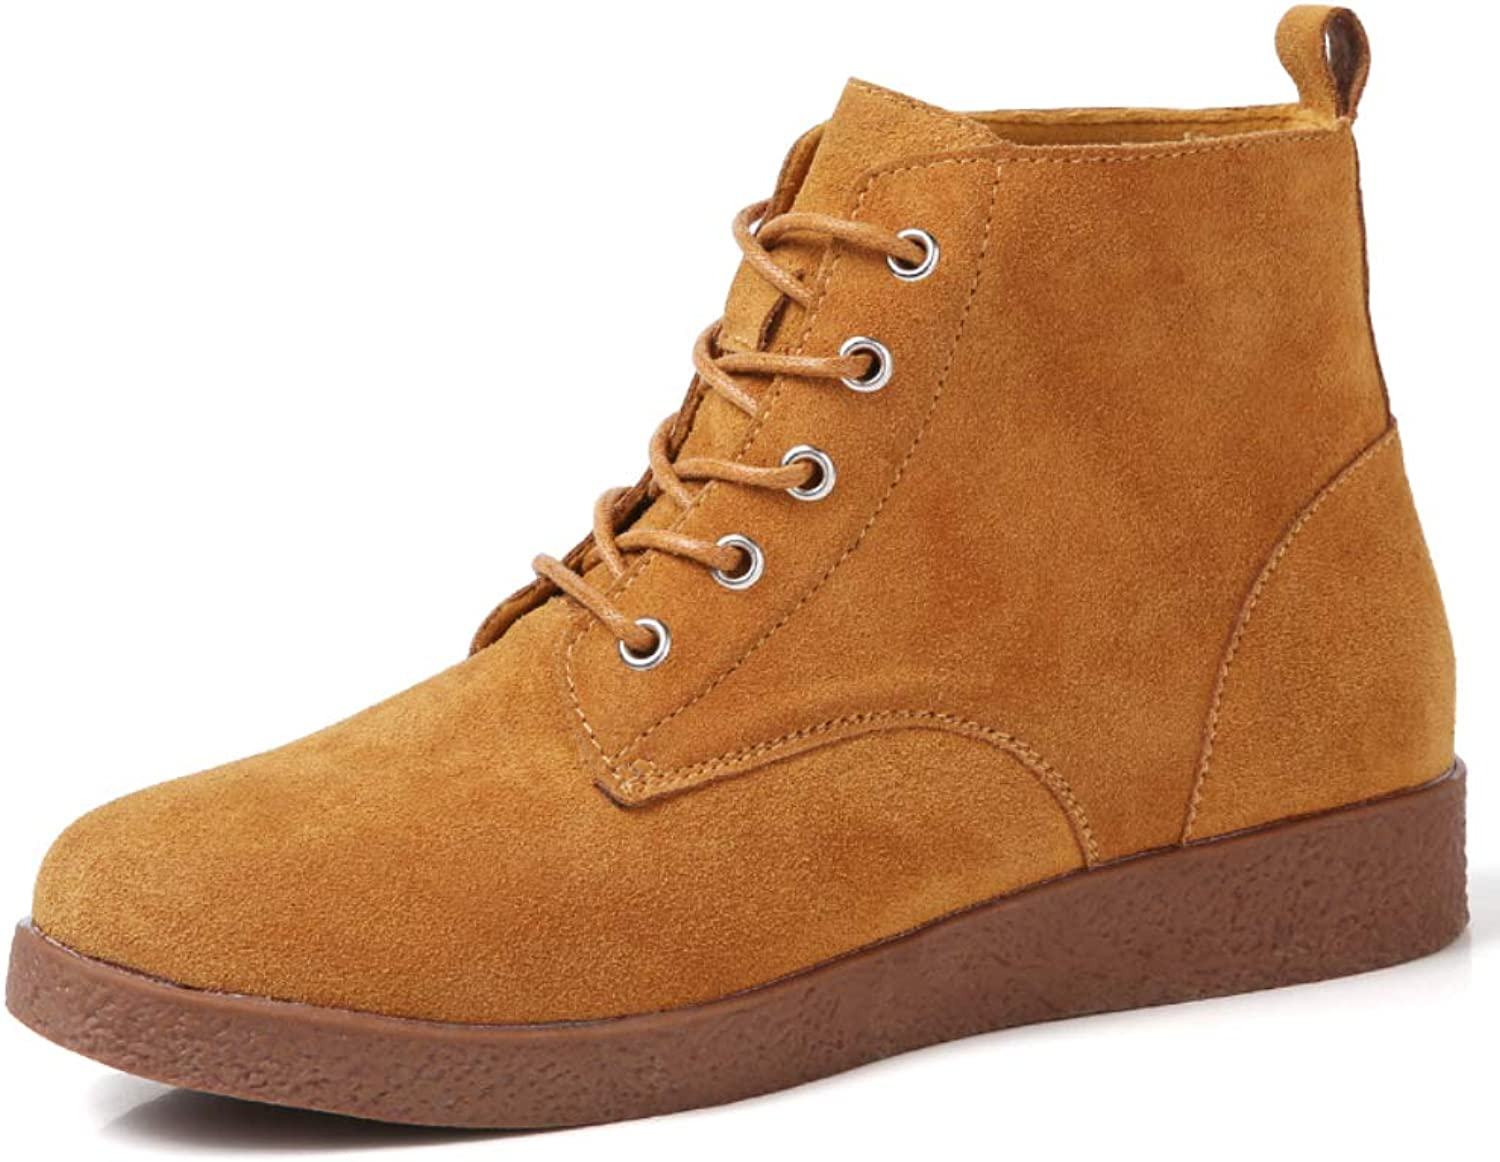 Fashion Leather Ankle Boots for Women Winter Combat Boots